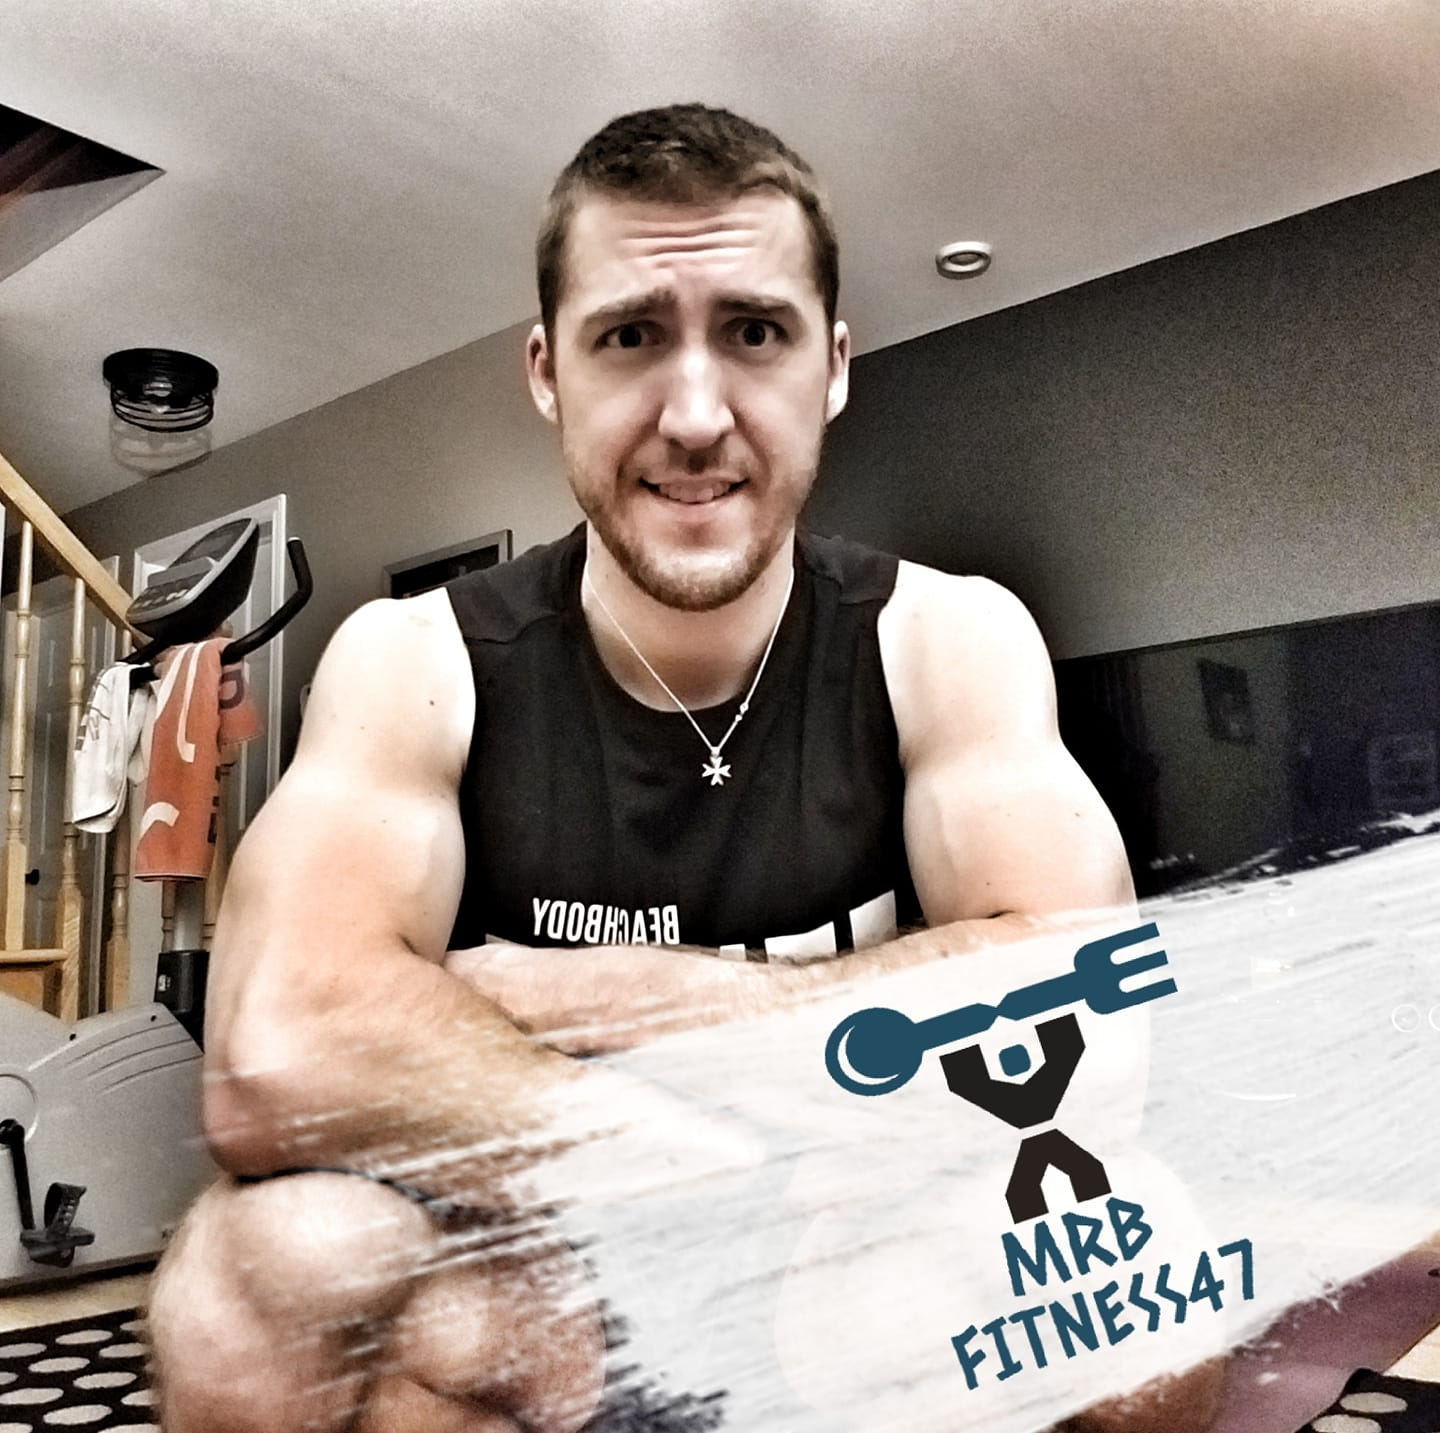 Matt Bracegirdle   Cohost of the  Fit Men Movement podcast , certified Insanity instructor, king of consistency, master of early morning workouts, husband, sports enthusiast, former athlete and big proponent of Men's Mental Health.